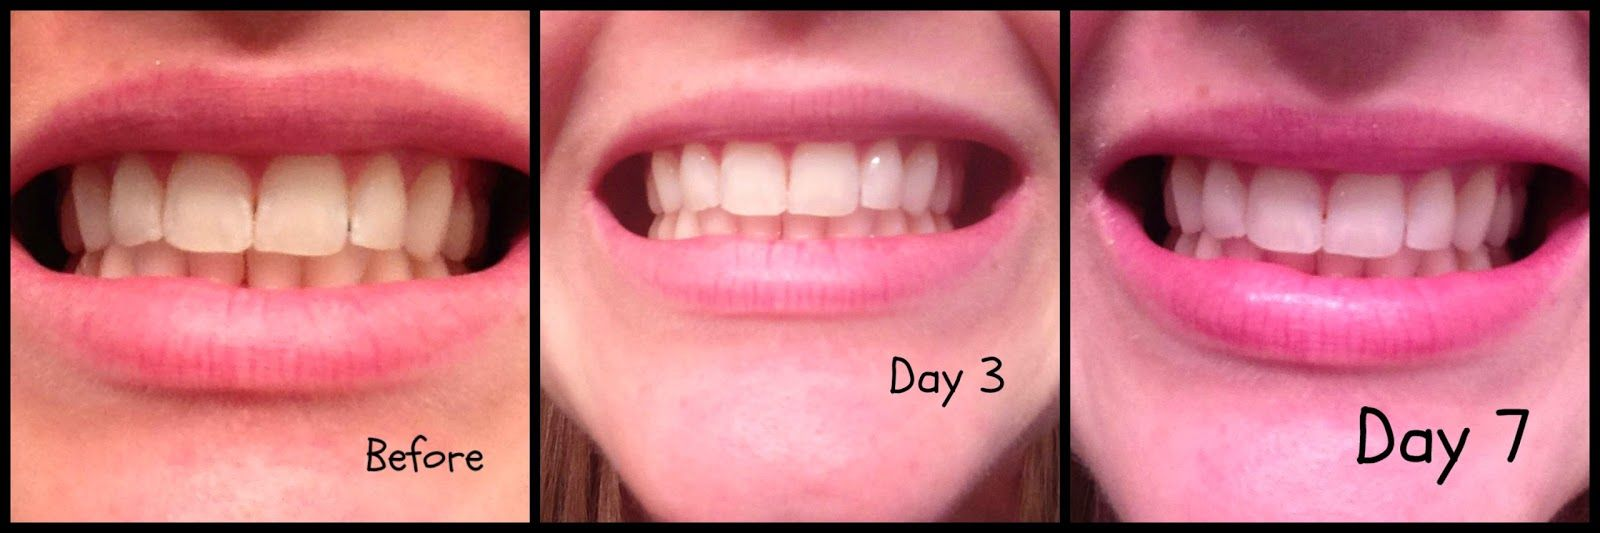 Colgate teeth whitening teeth whitening products pinterest teeth - My Show Because Who Doesn T Want Whiter Teeth